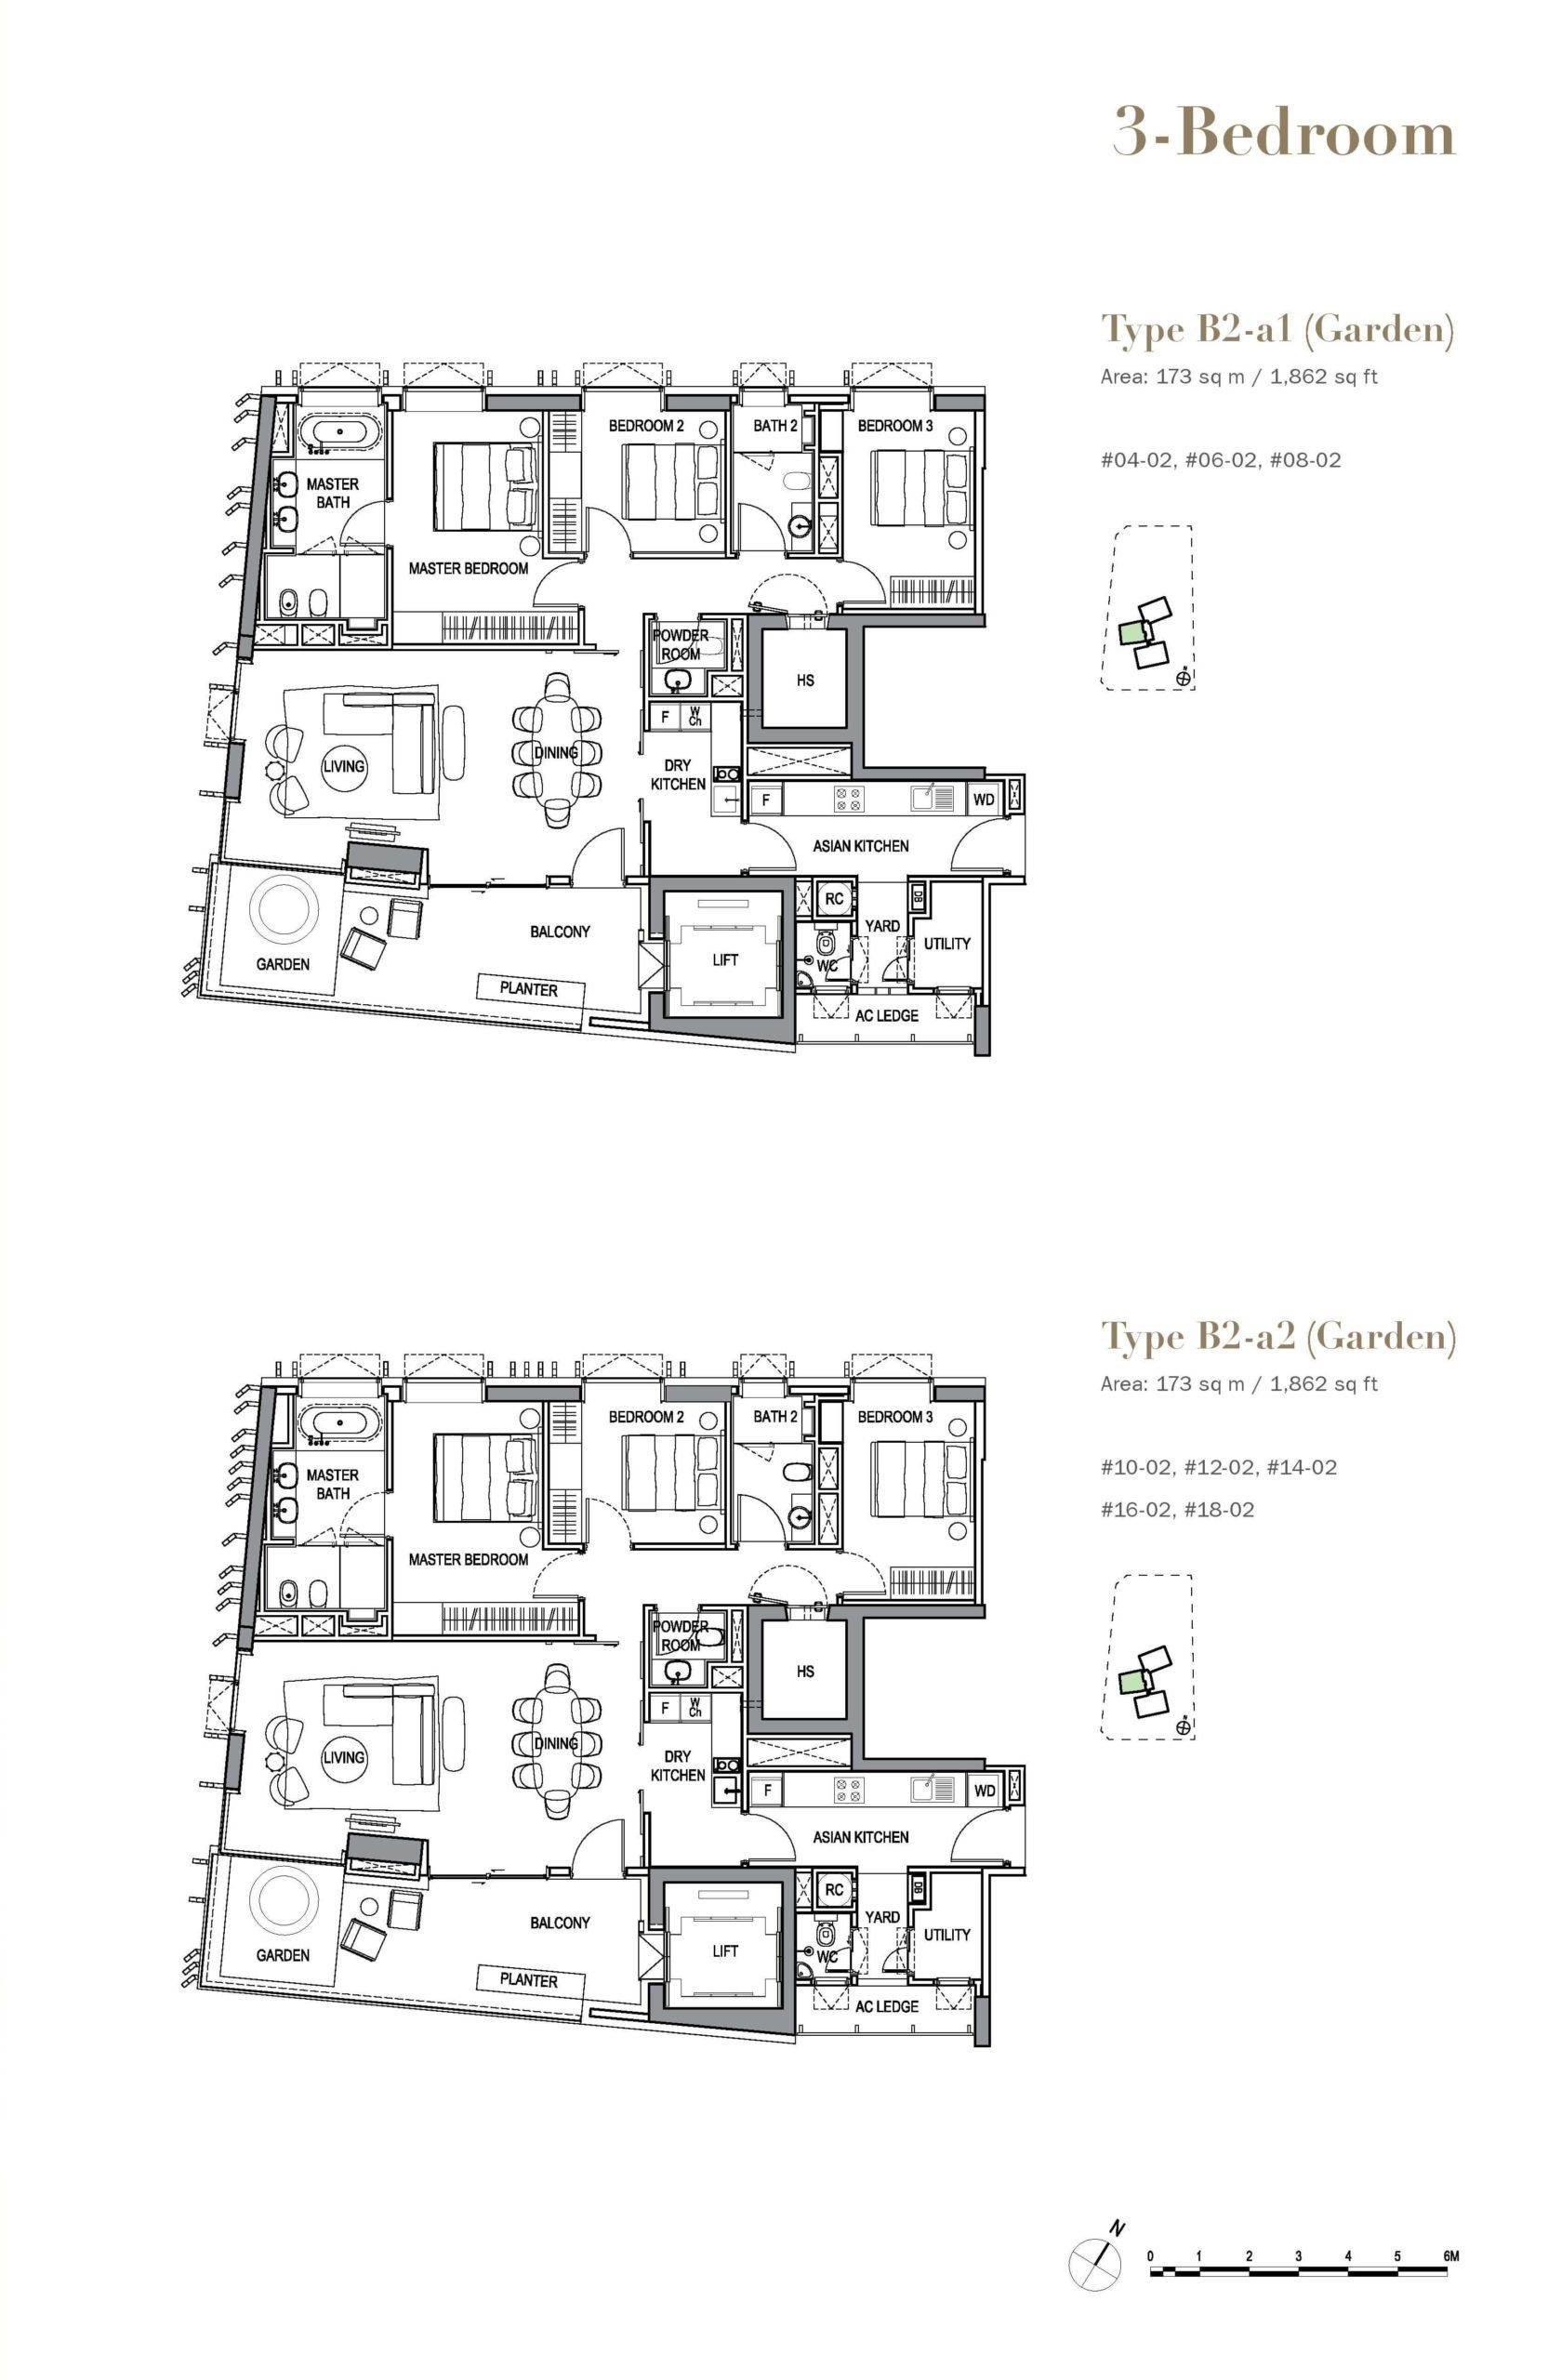 3 orchard by-the-park floor plan wilderness 3 Bedroom